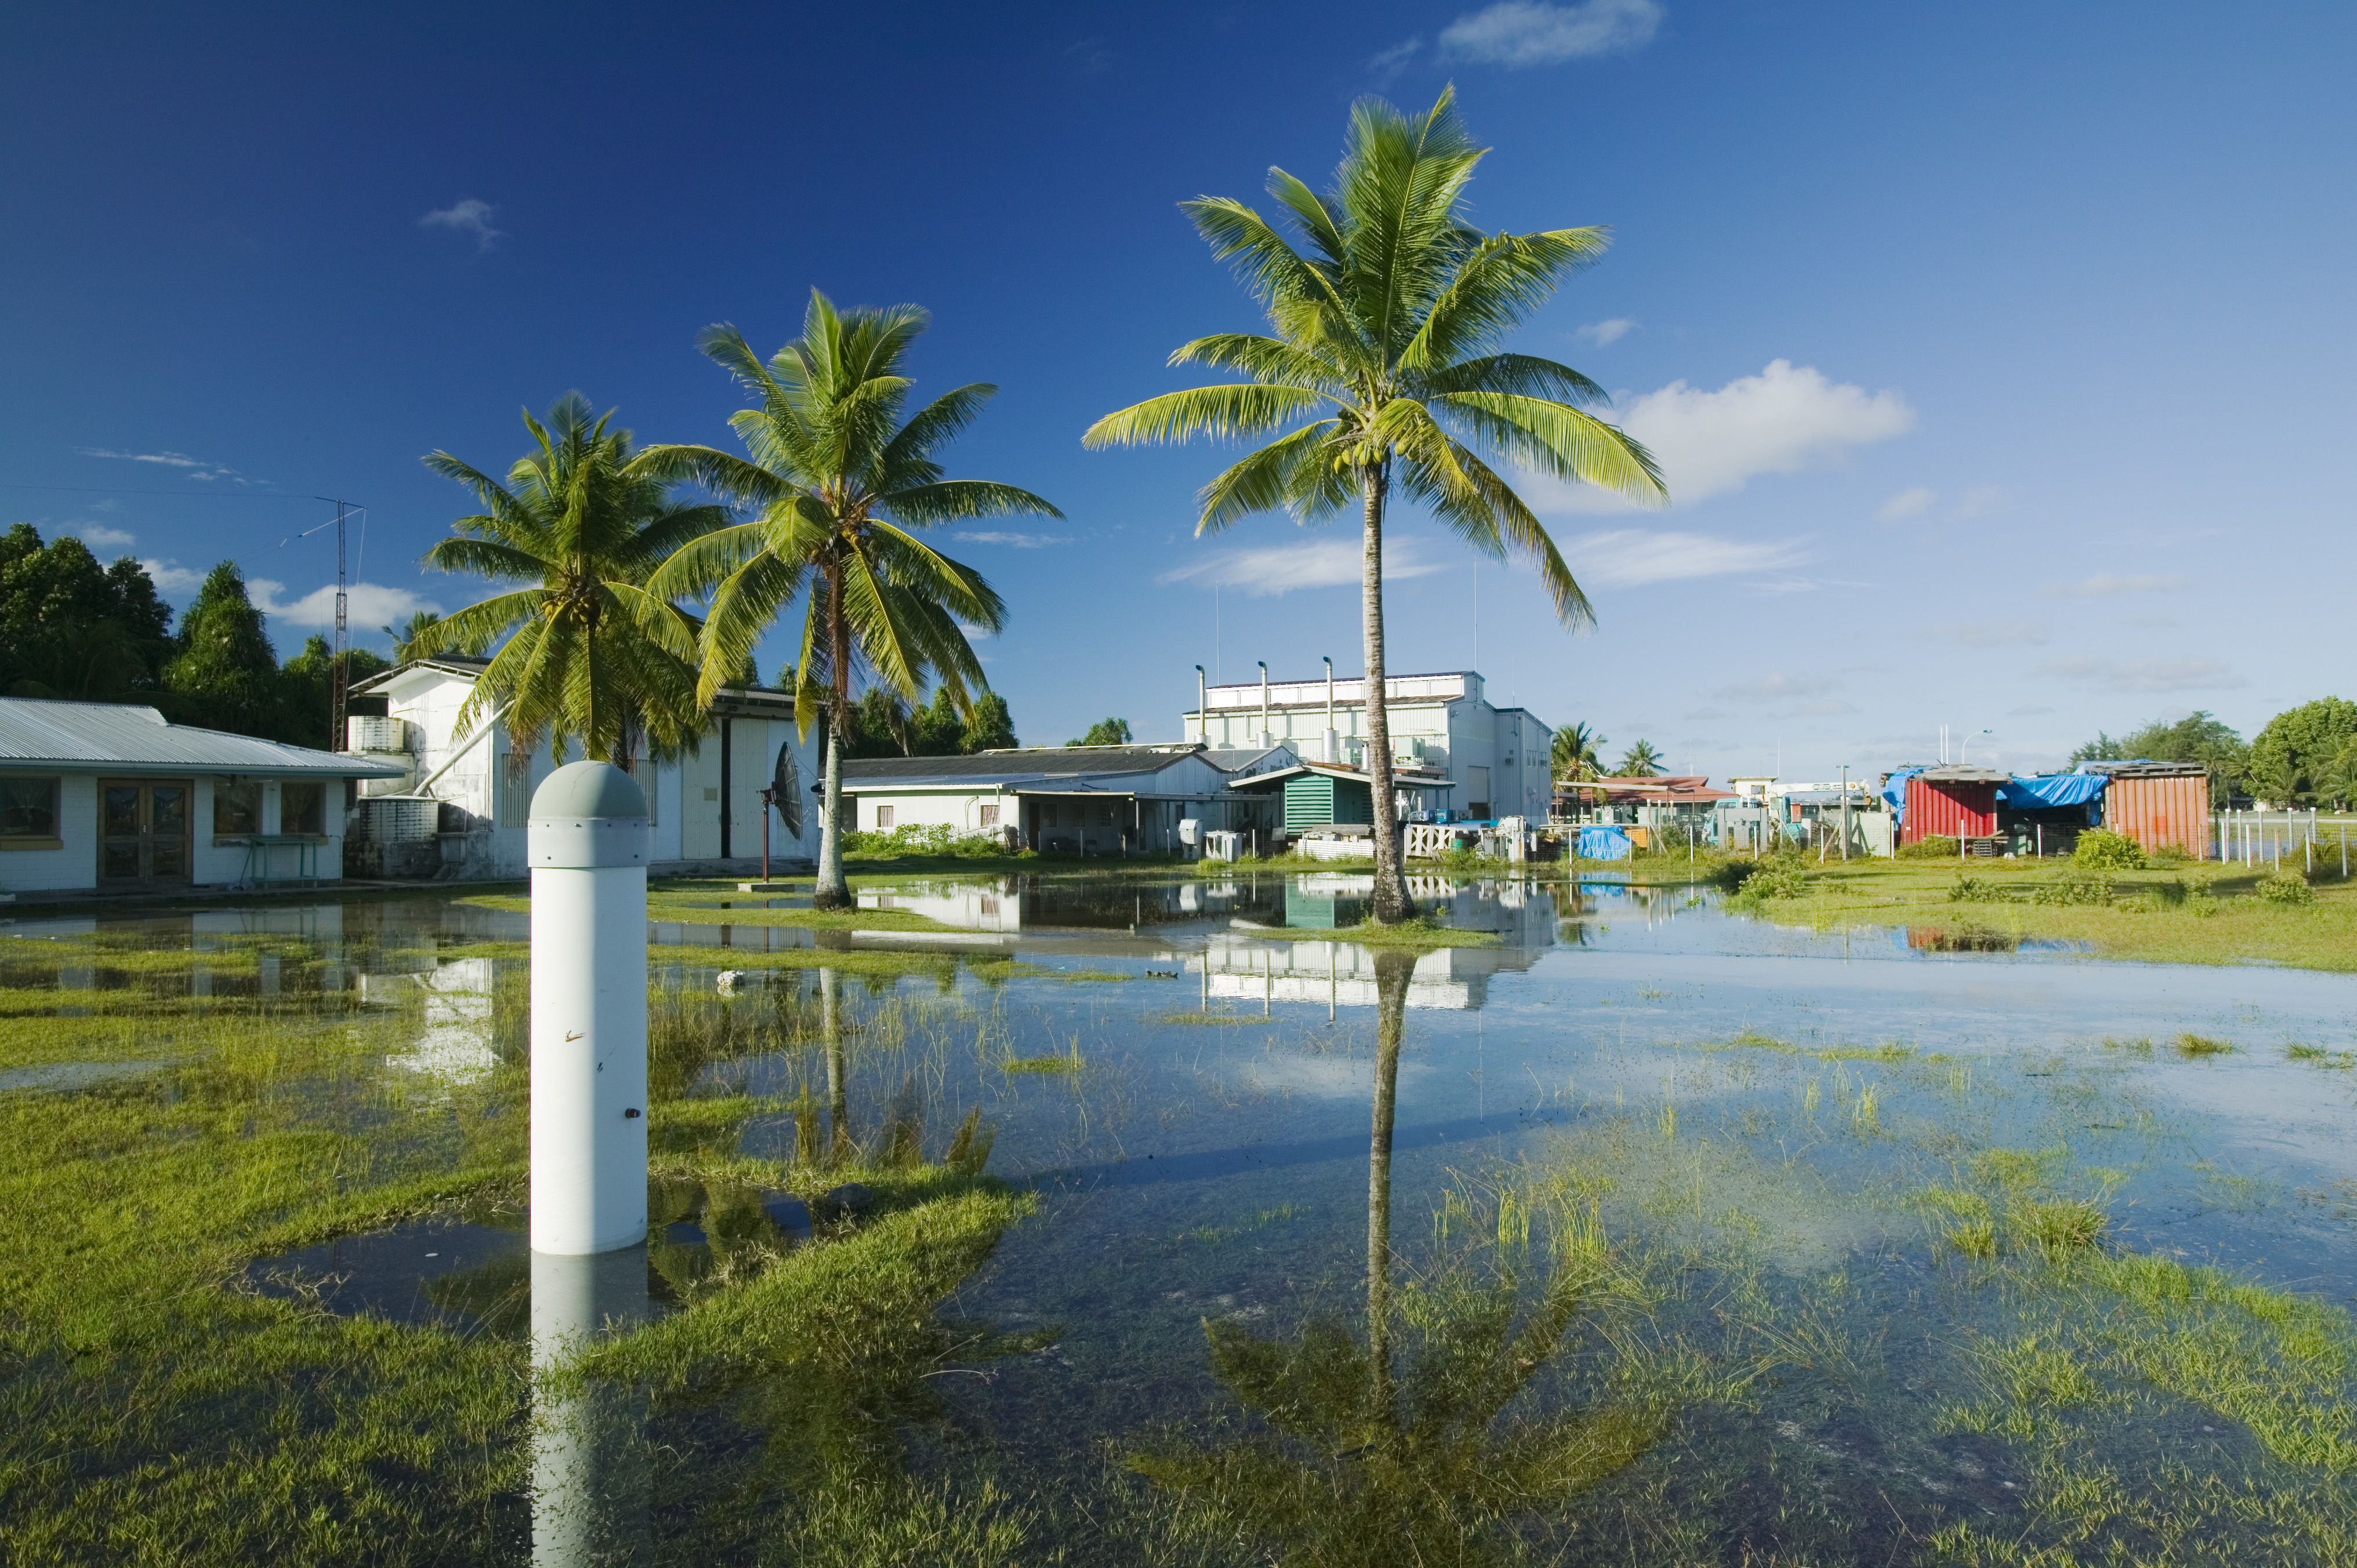 Tuvalu - The Drowning Nation